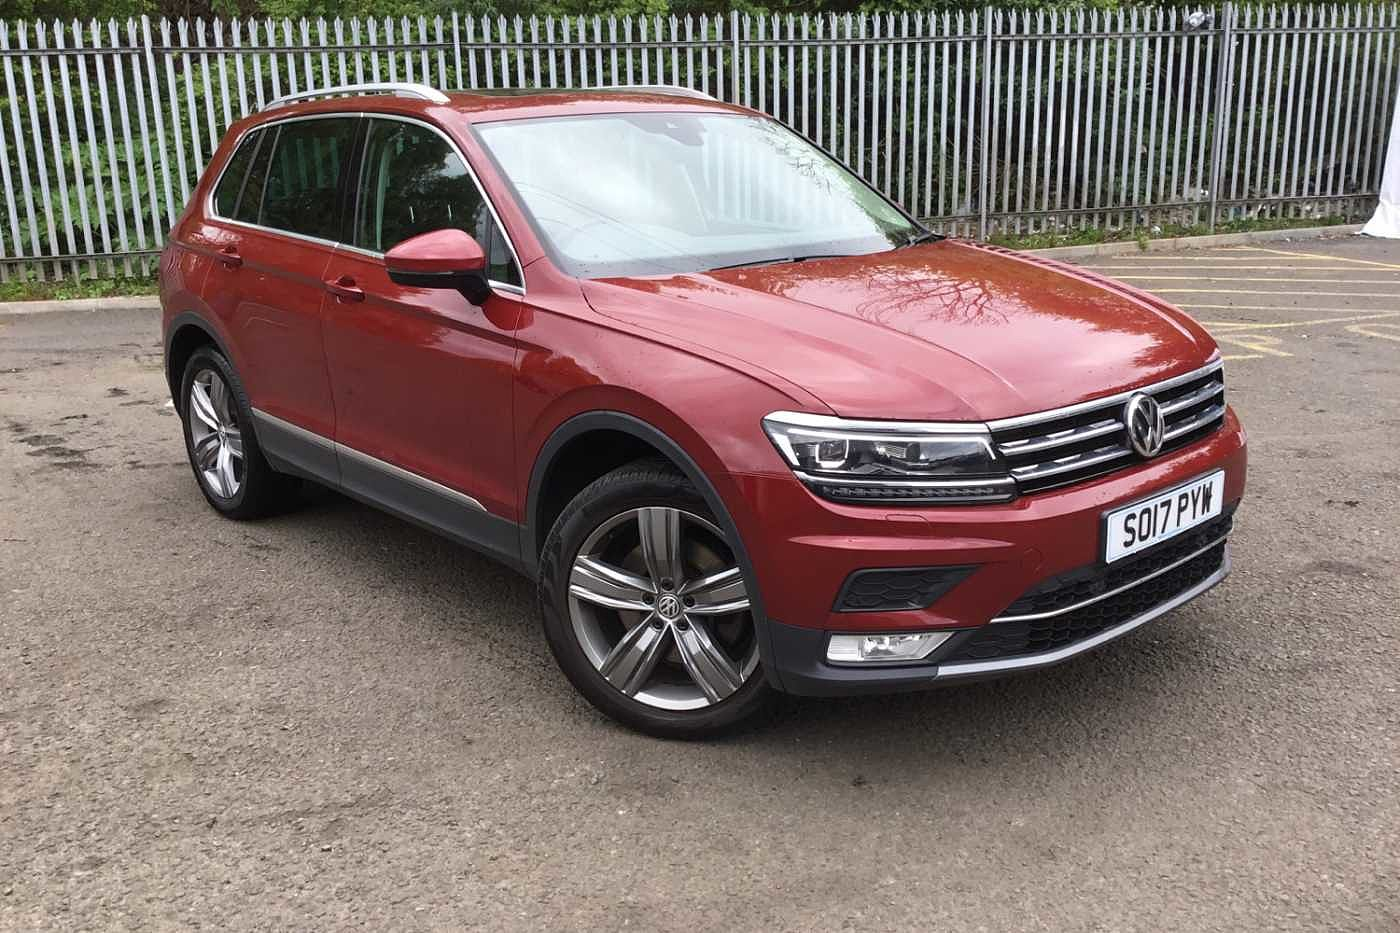 2017 Tiguan 2.0 TSI 180PS SEL 4Motion DSG 5 for Sale in Edinburgh